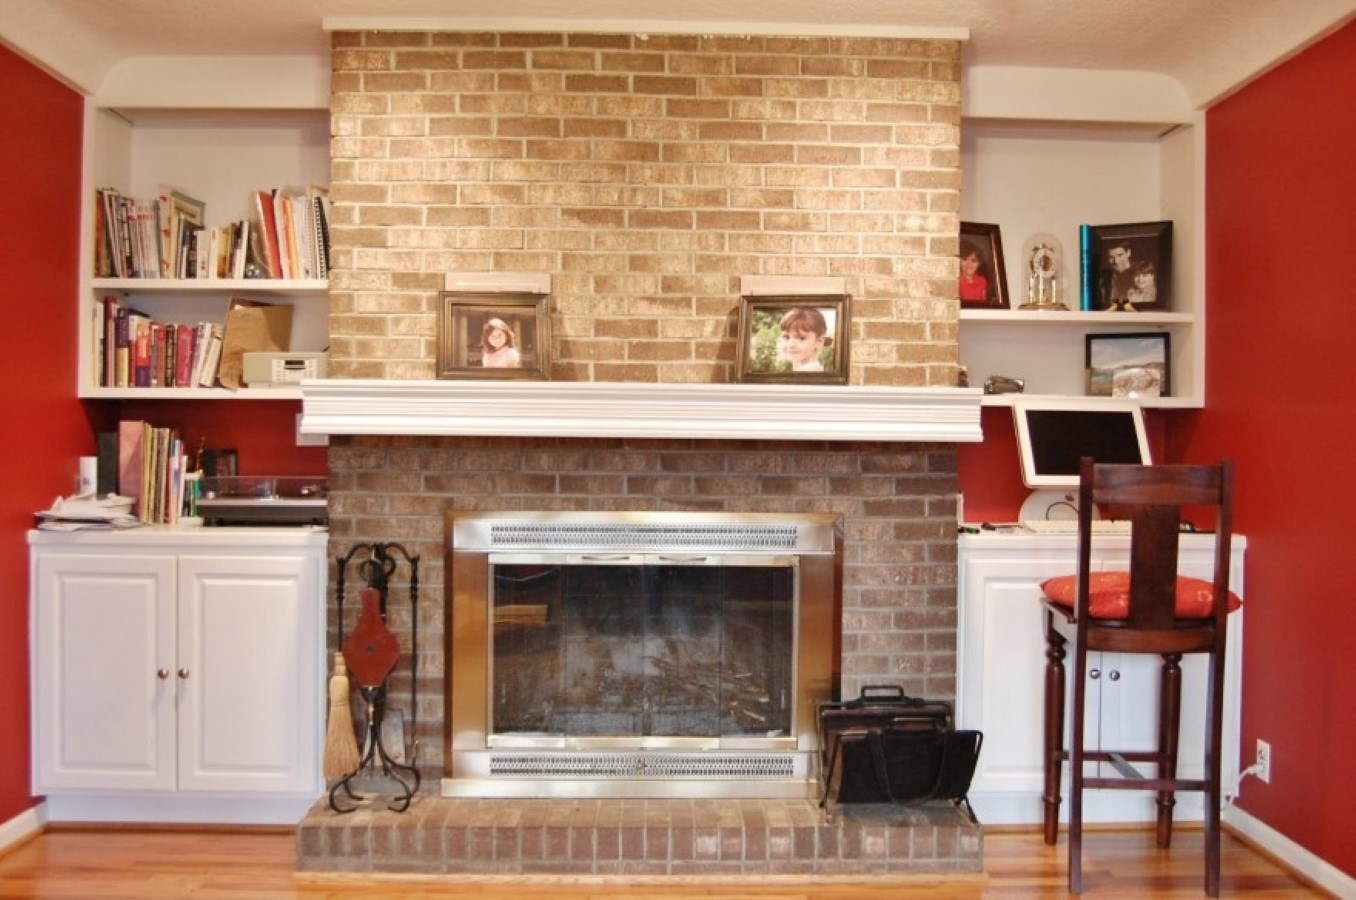 Rumford Fireplace with bricked mantel kit plus shelves matched with wooden floor plus sofa set for heat warming ideas